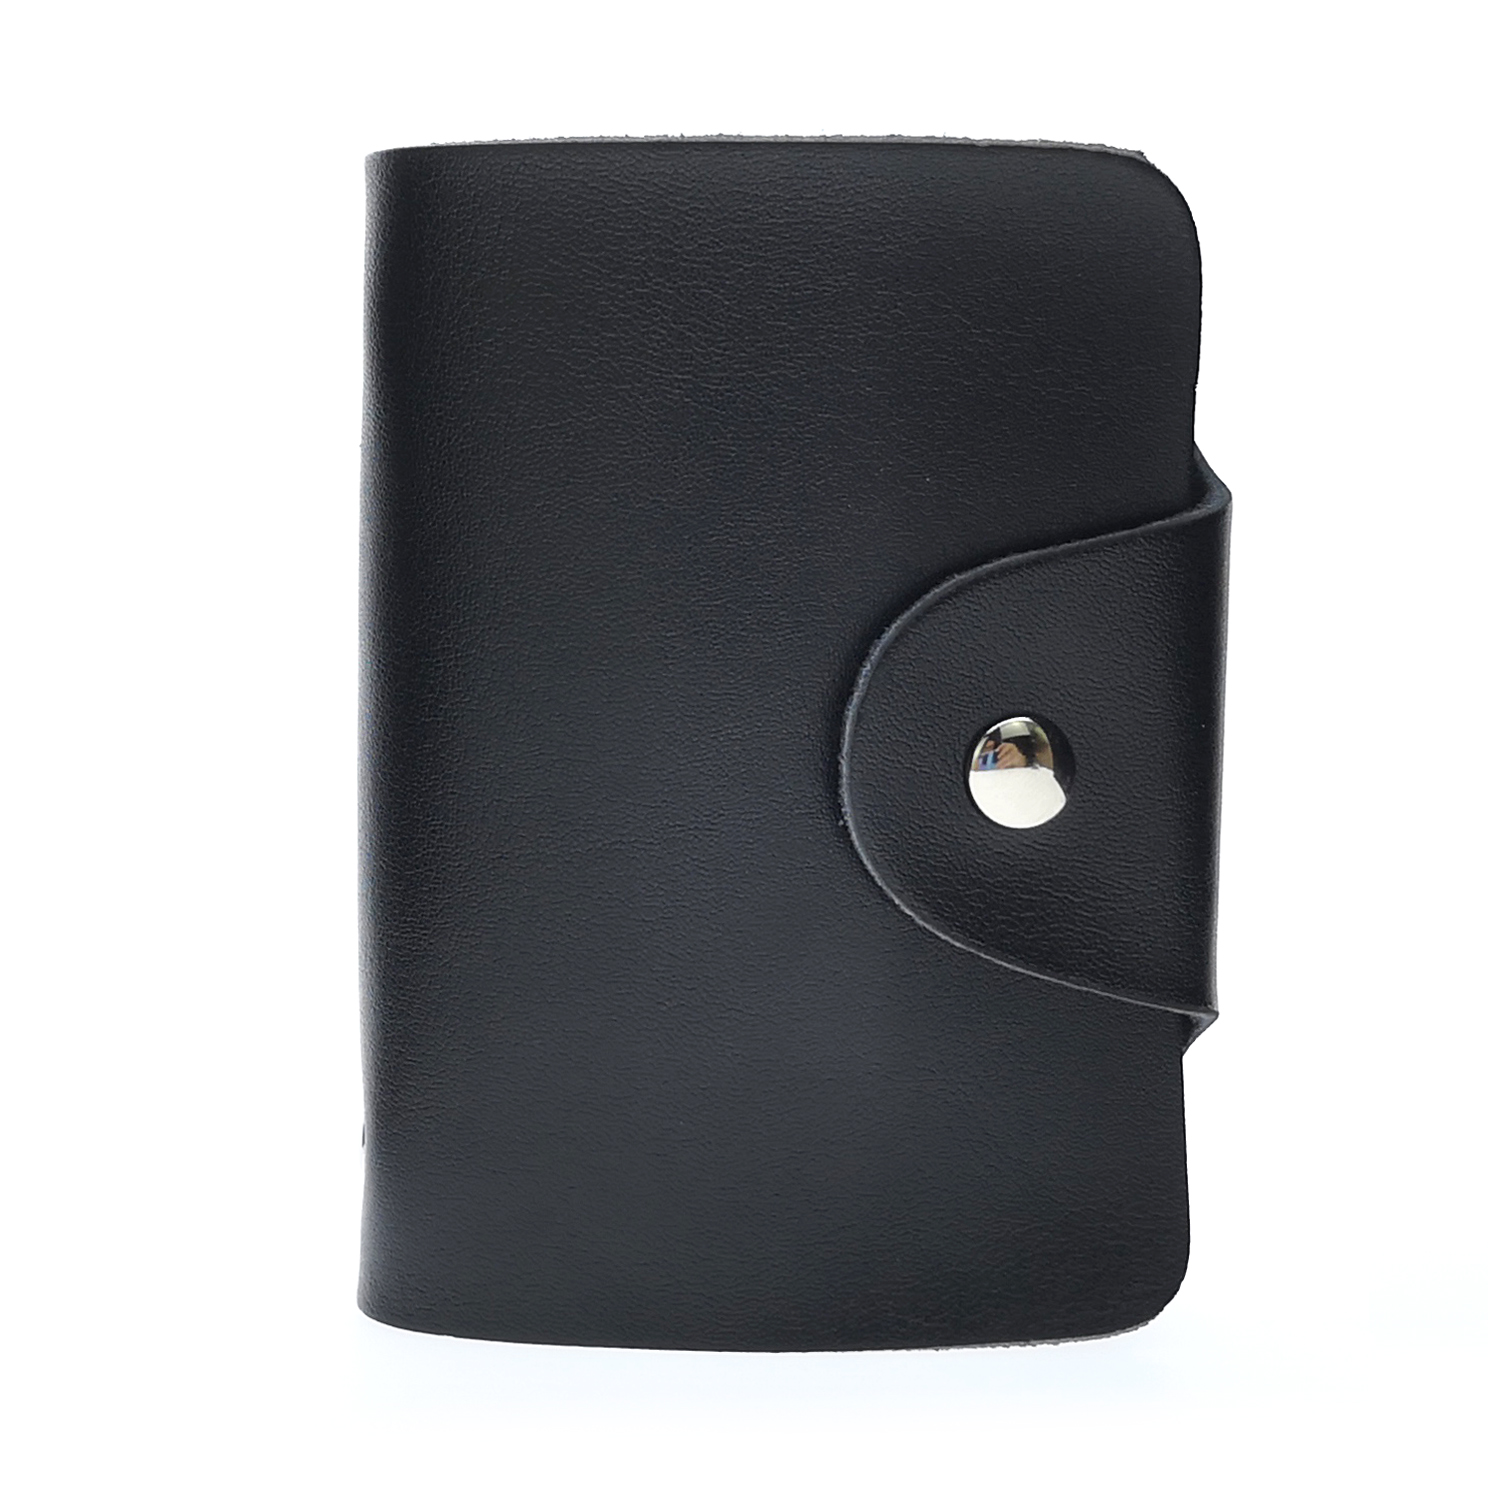 ZENTEII Genuine Leather Small Card Case Credit Card Holder